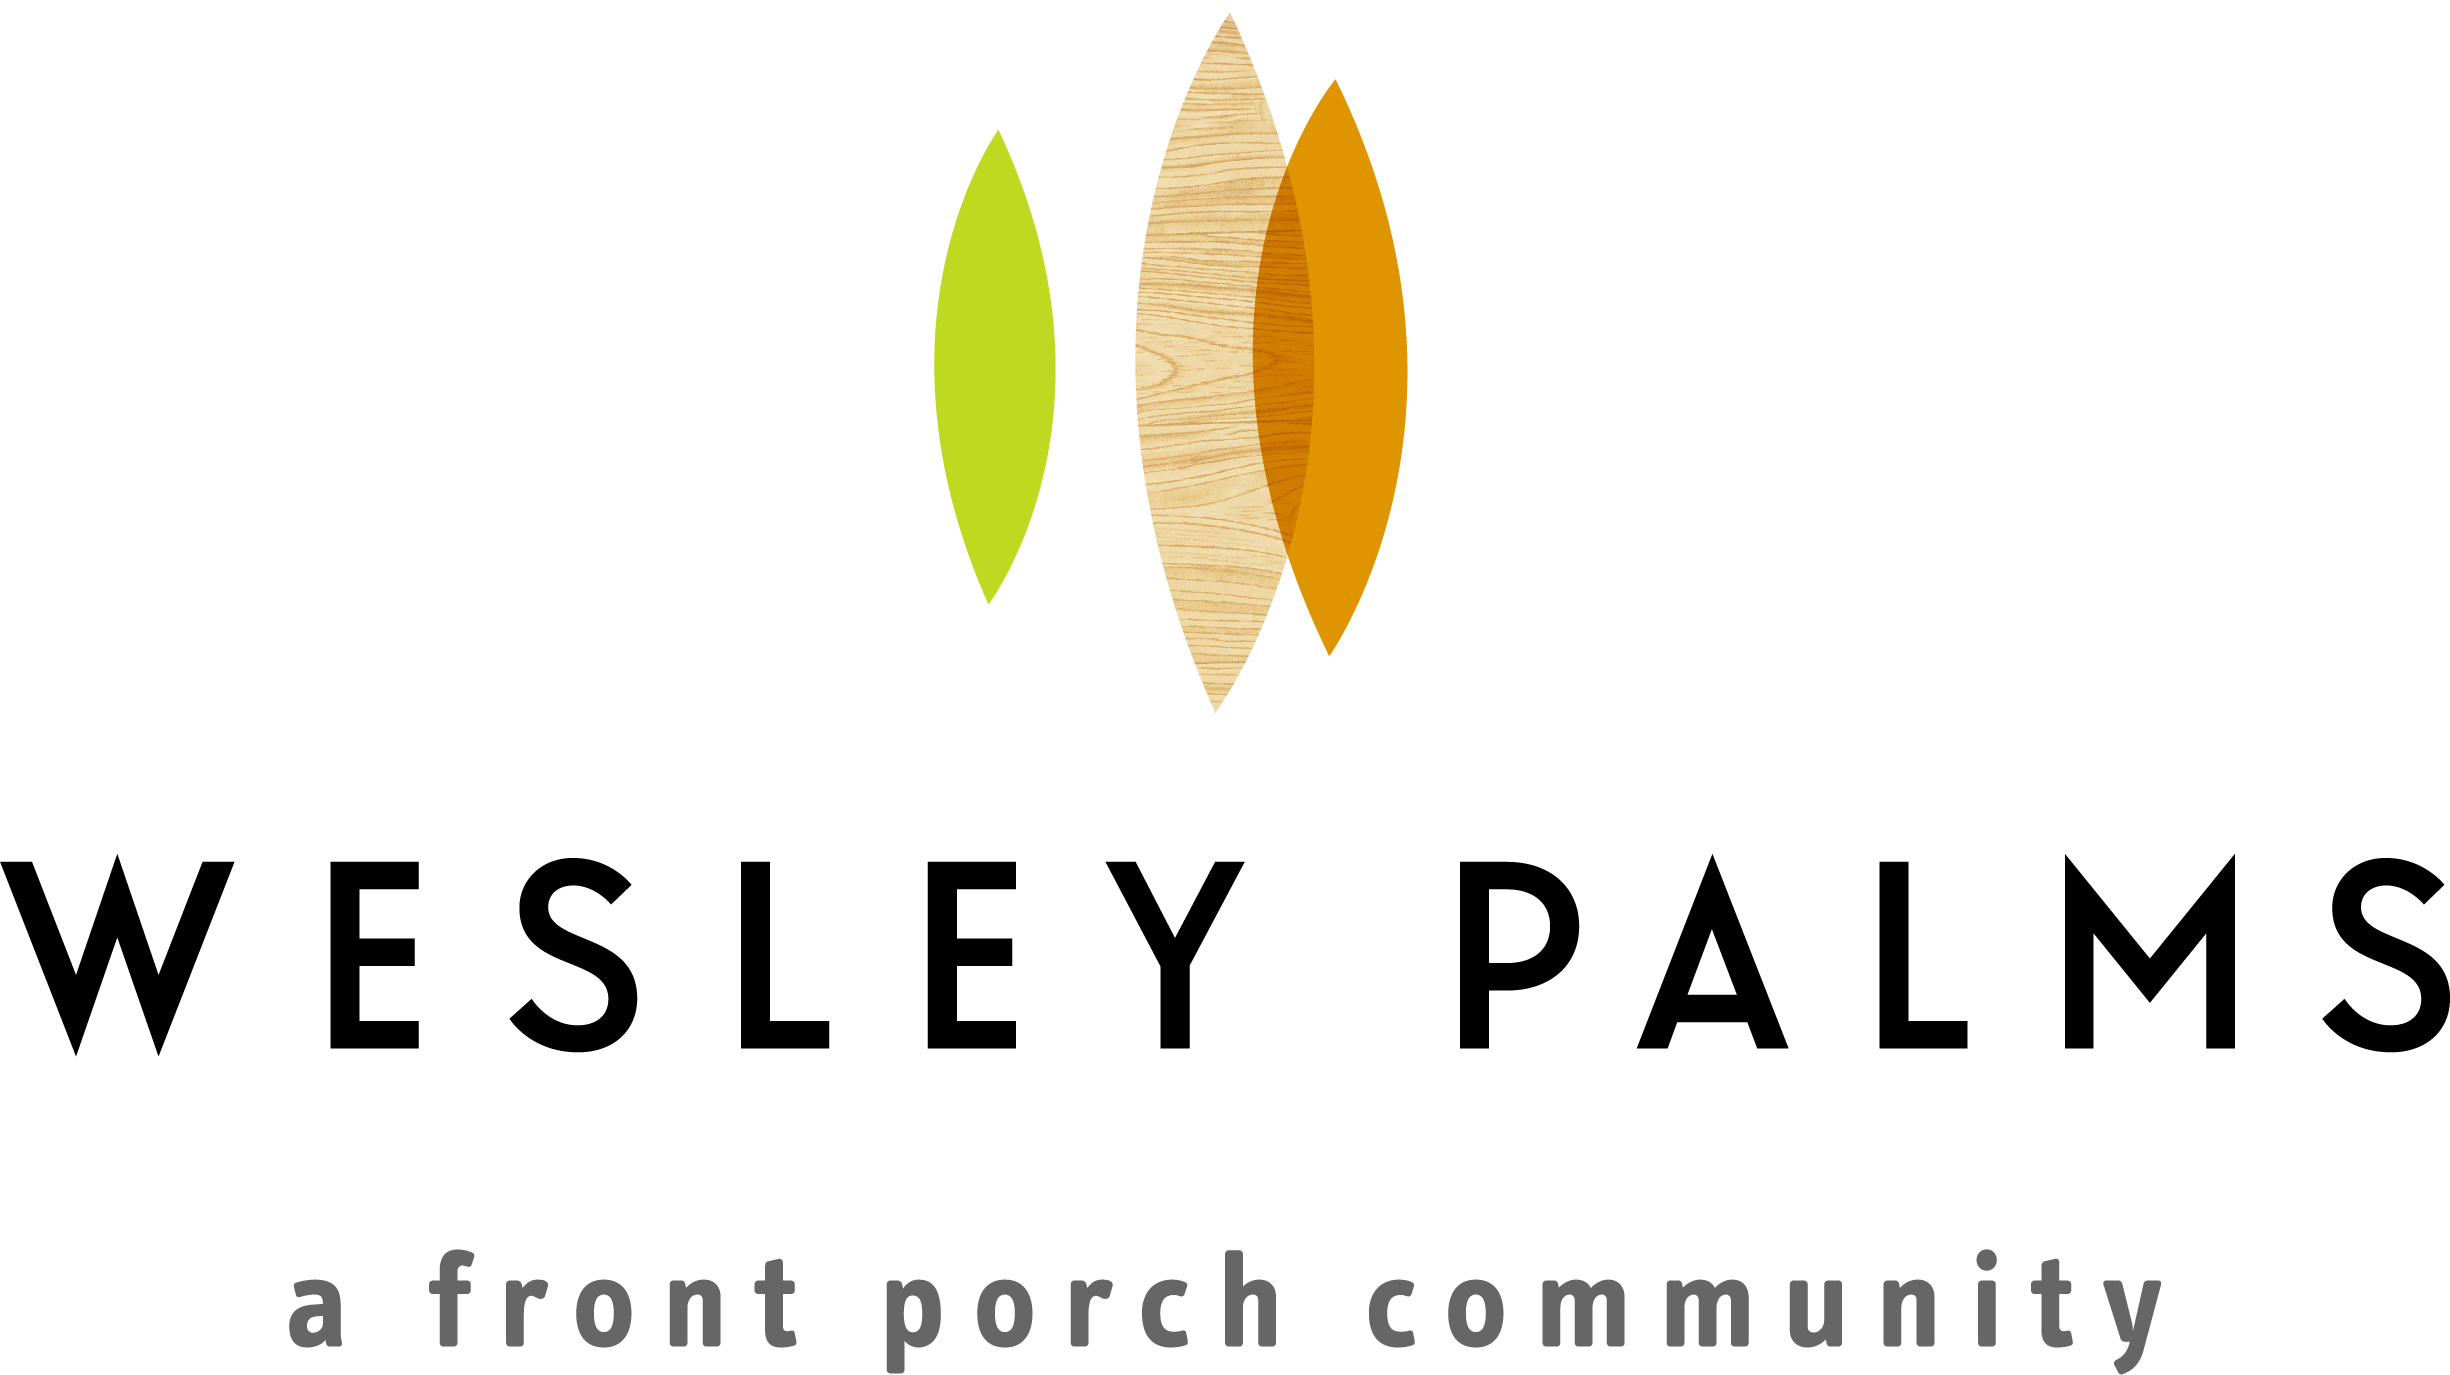 WesleyPalms_Logo_Single_Stacked_Tag_1_SM.jpg